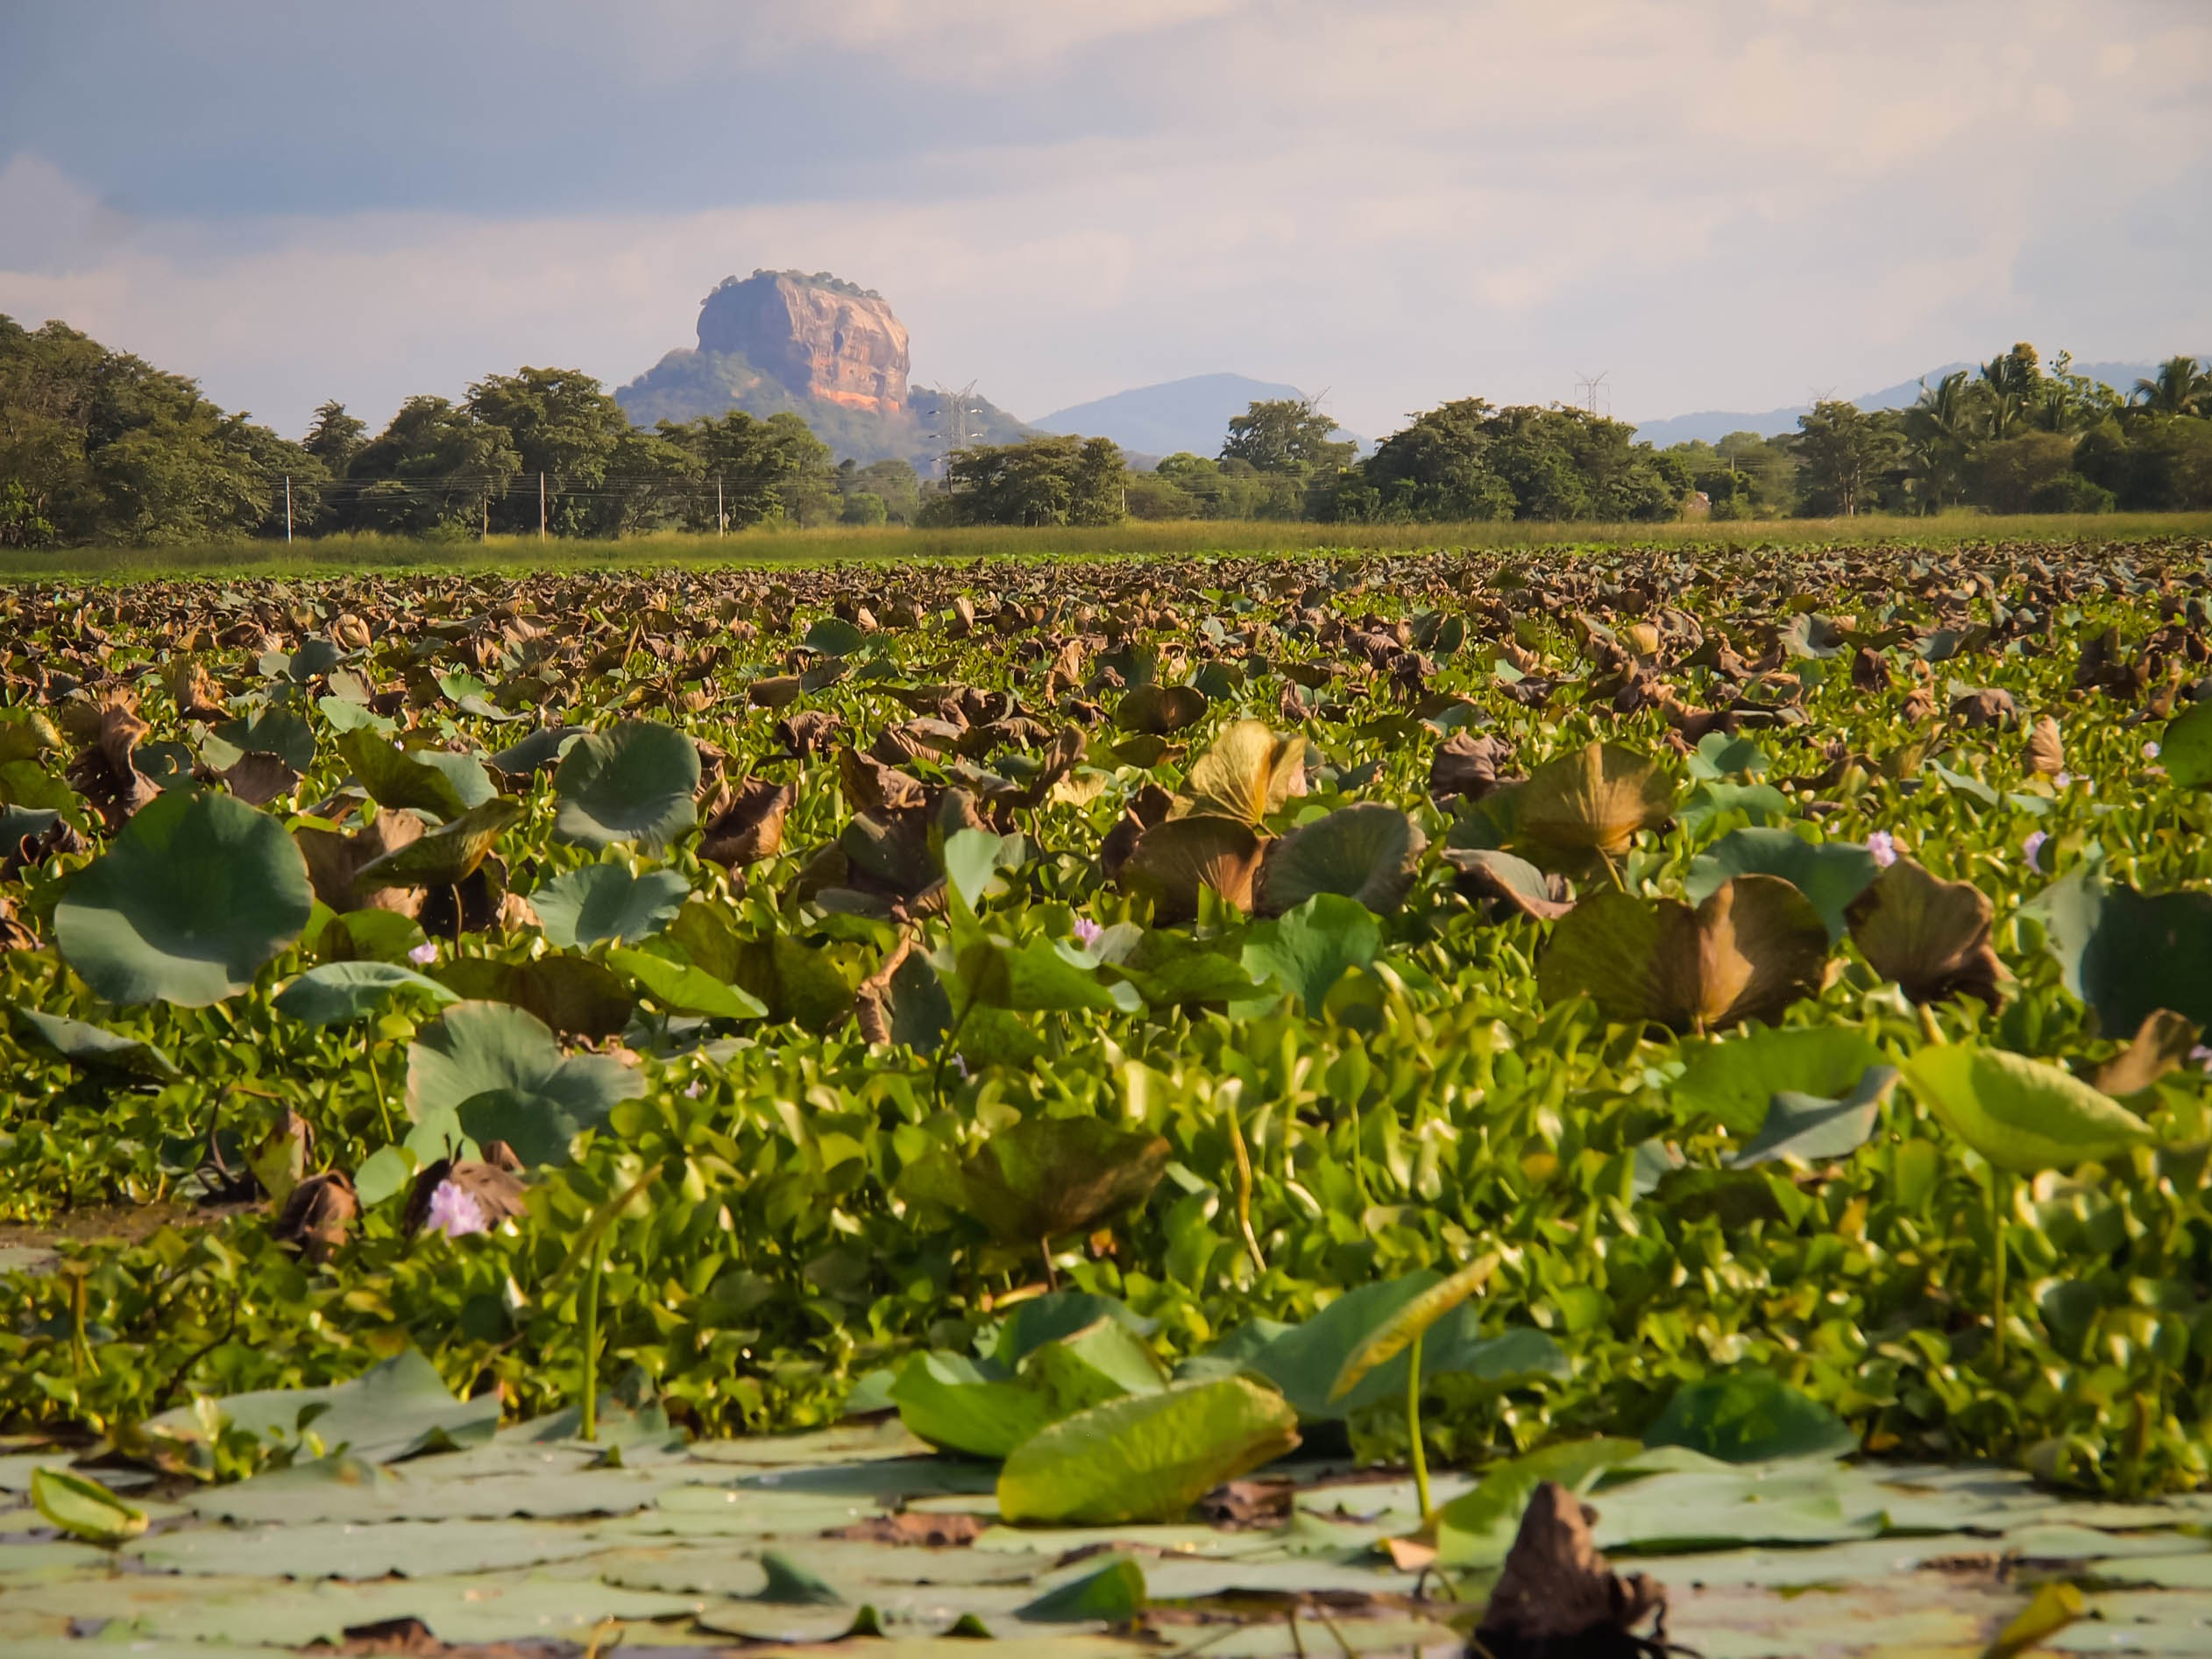 Sigiriya from across a lake